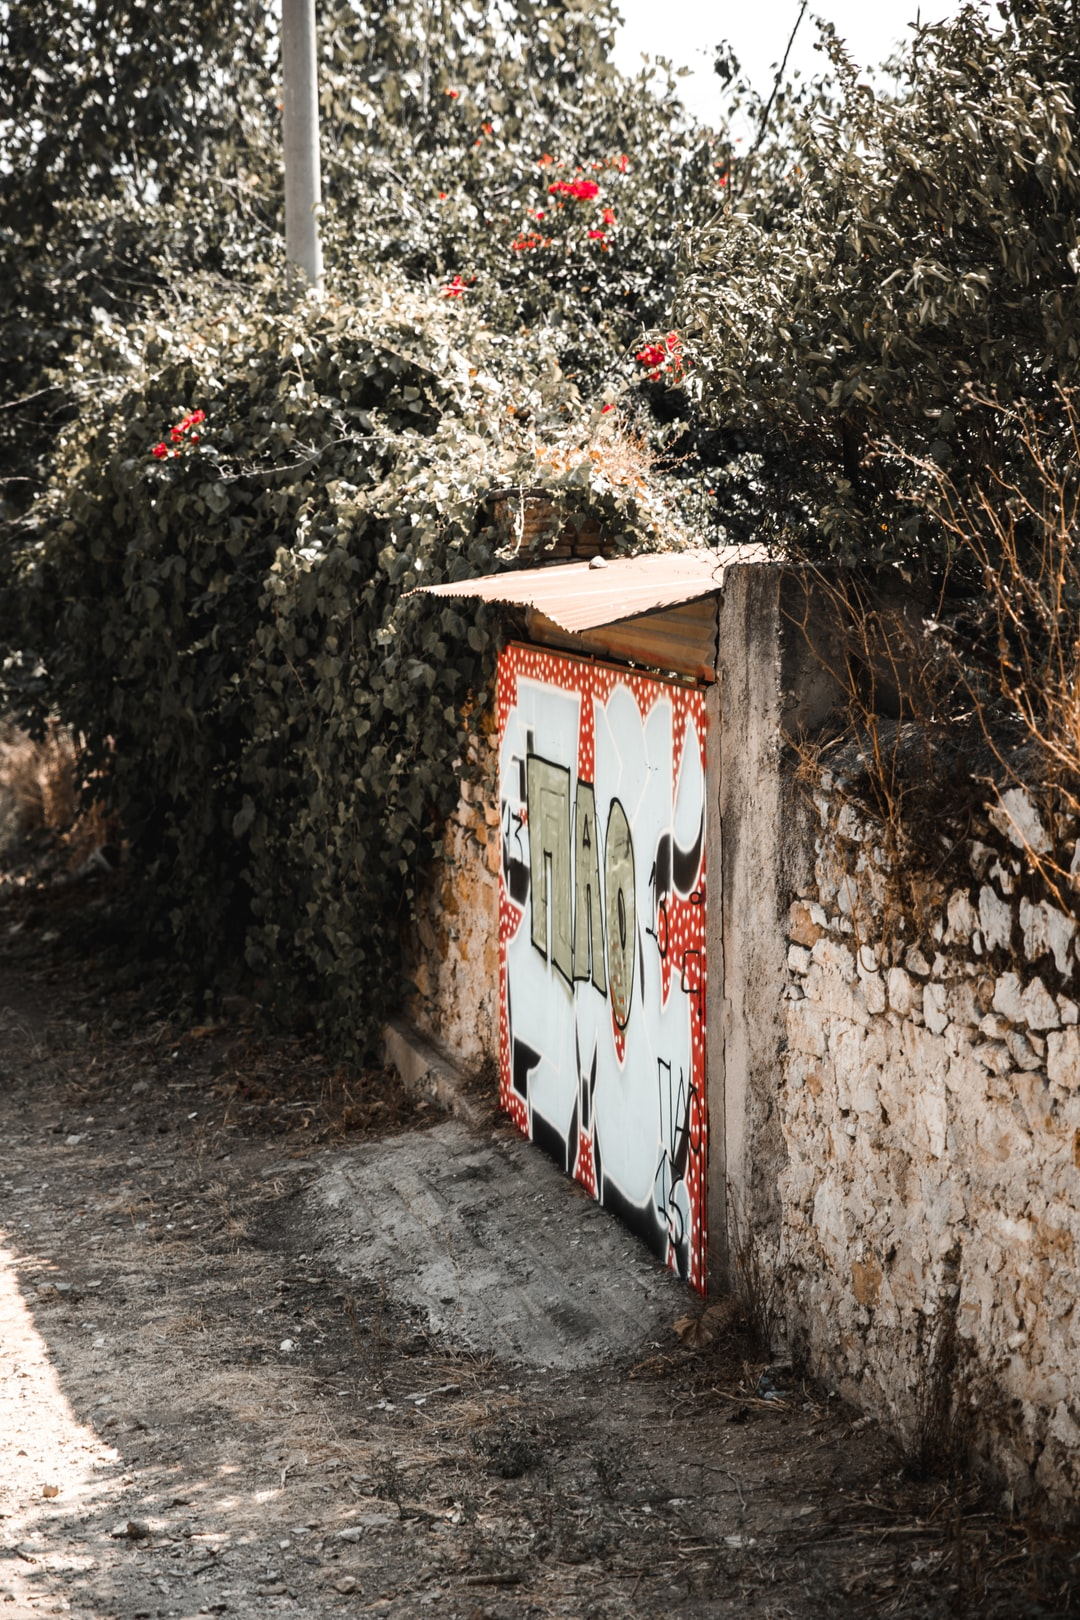 A random back alley in Athens, Greece i stumbled upon an old brick wall graffiti'd up. Definitely worth the snap!  Shot & Edited By @VisualsByRoyalZ